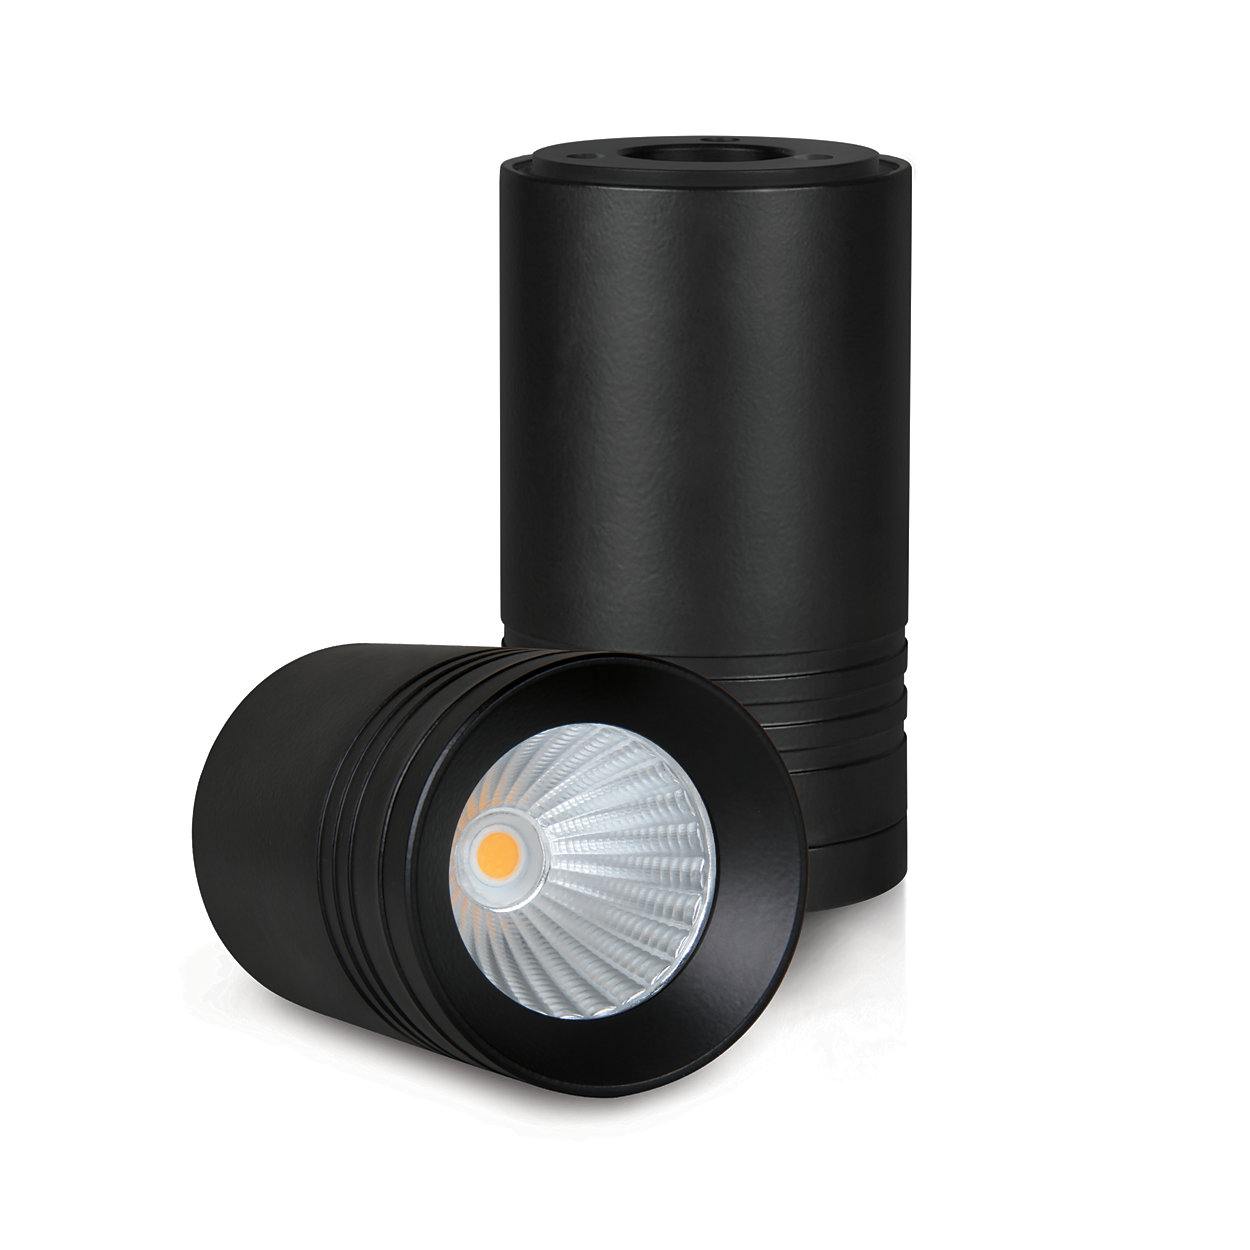 High quality LED light designed to last for years